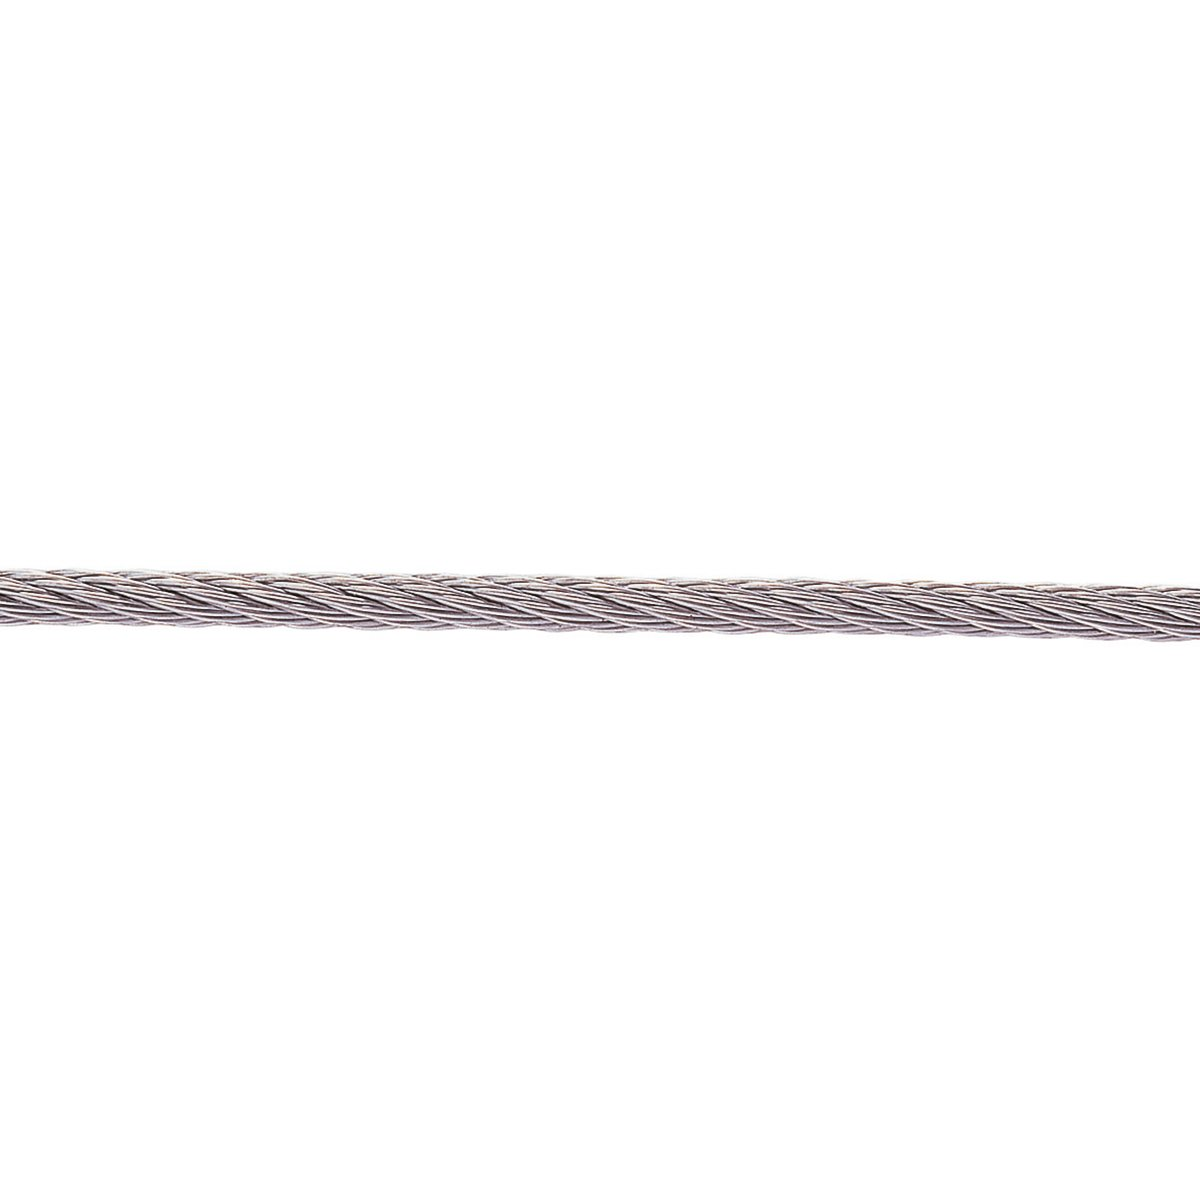 Pewag 80208 Stainless Steel Cable 2 mm Rust-Resistant